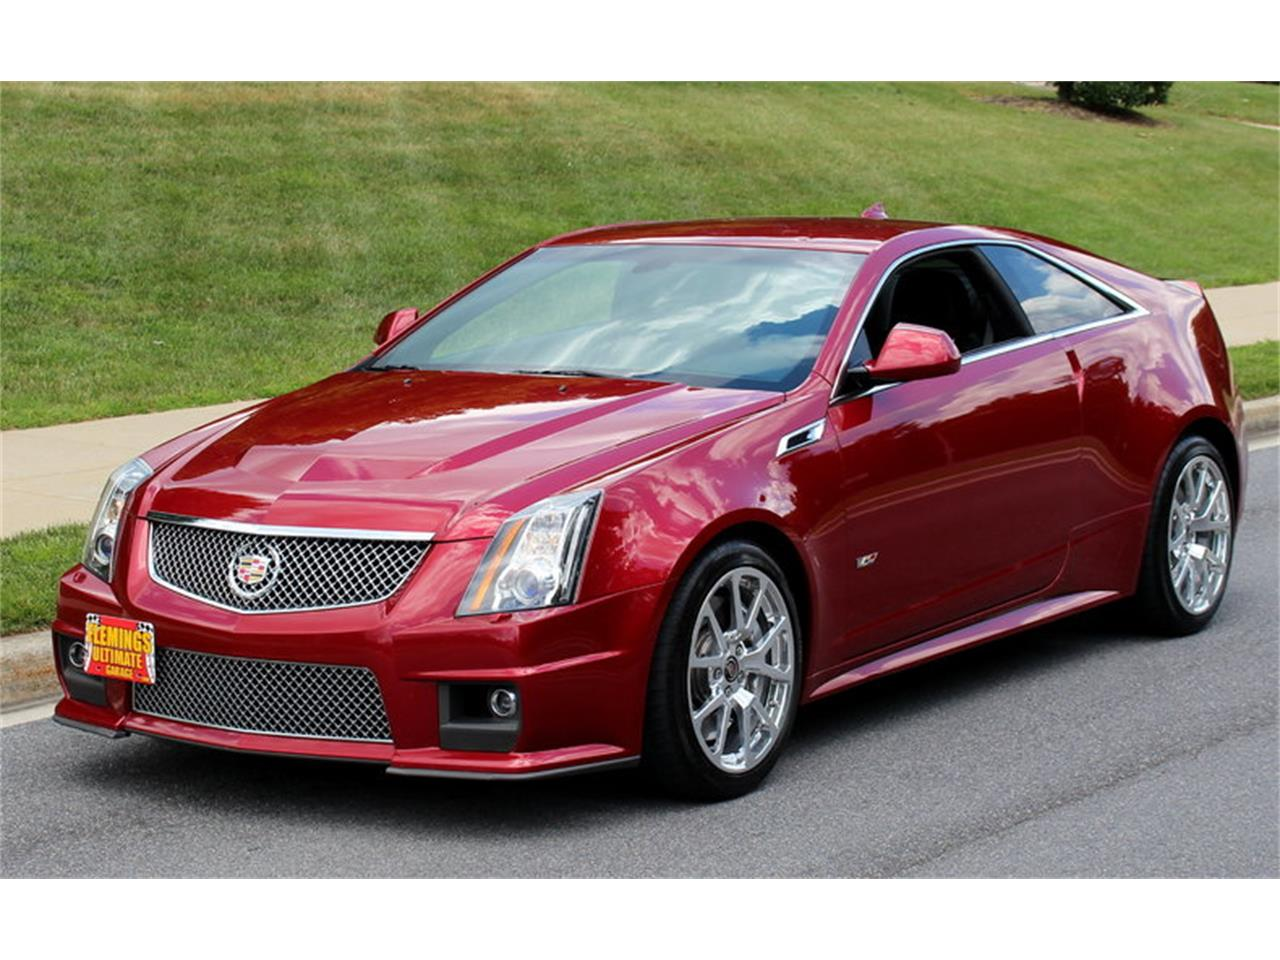 2012 cadillac cts for sale | classiccars | cc-1056519